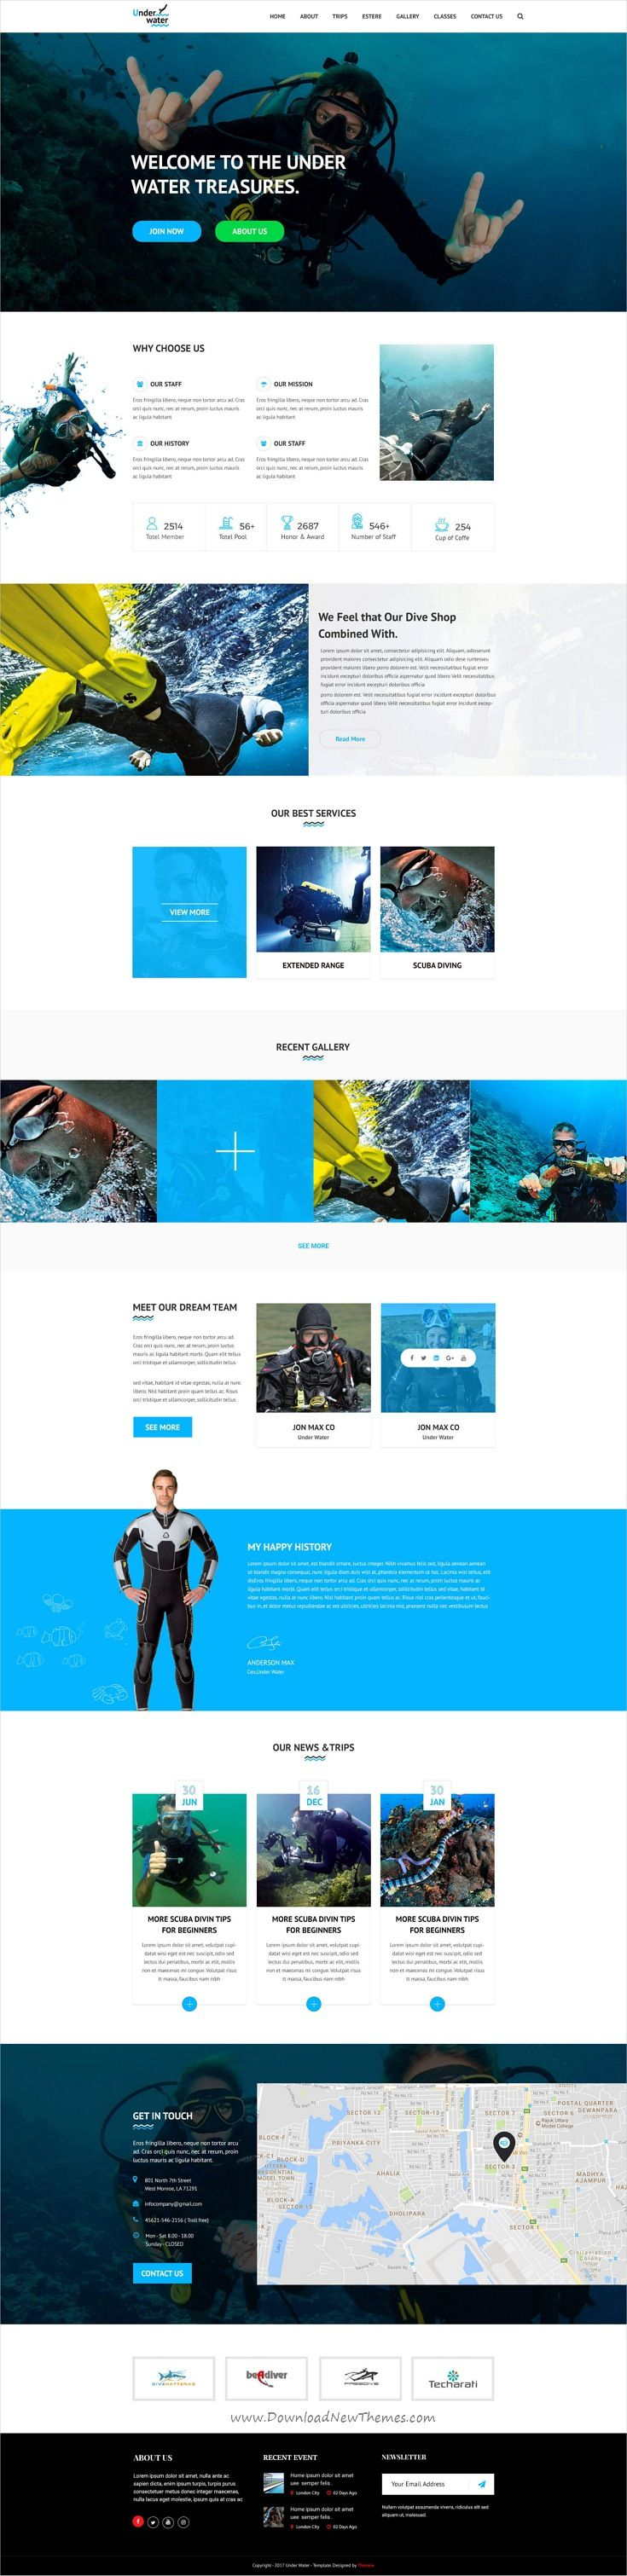 Professional clean and modern design #PSD template for onepage #underwarter treasures #website to live preview & download click on Visit